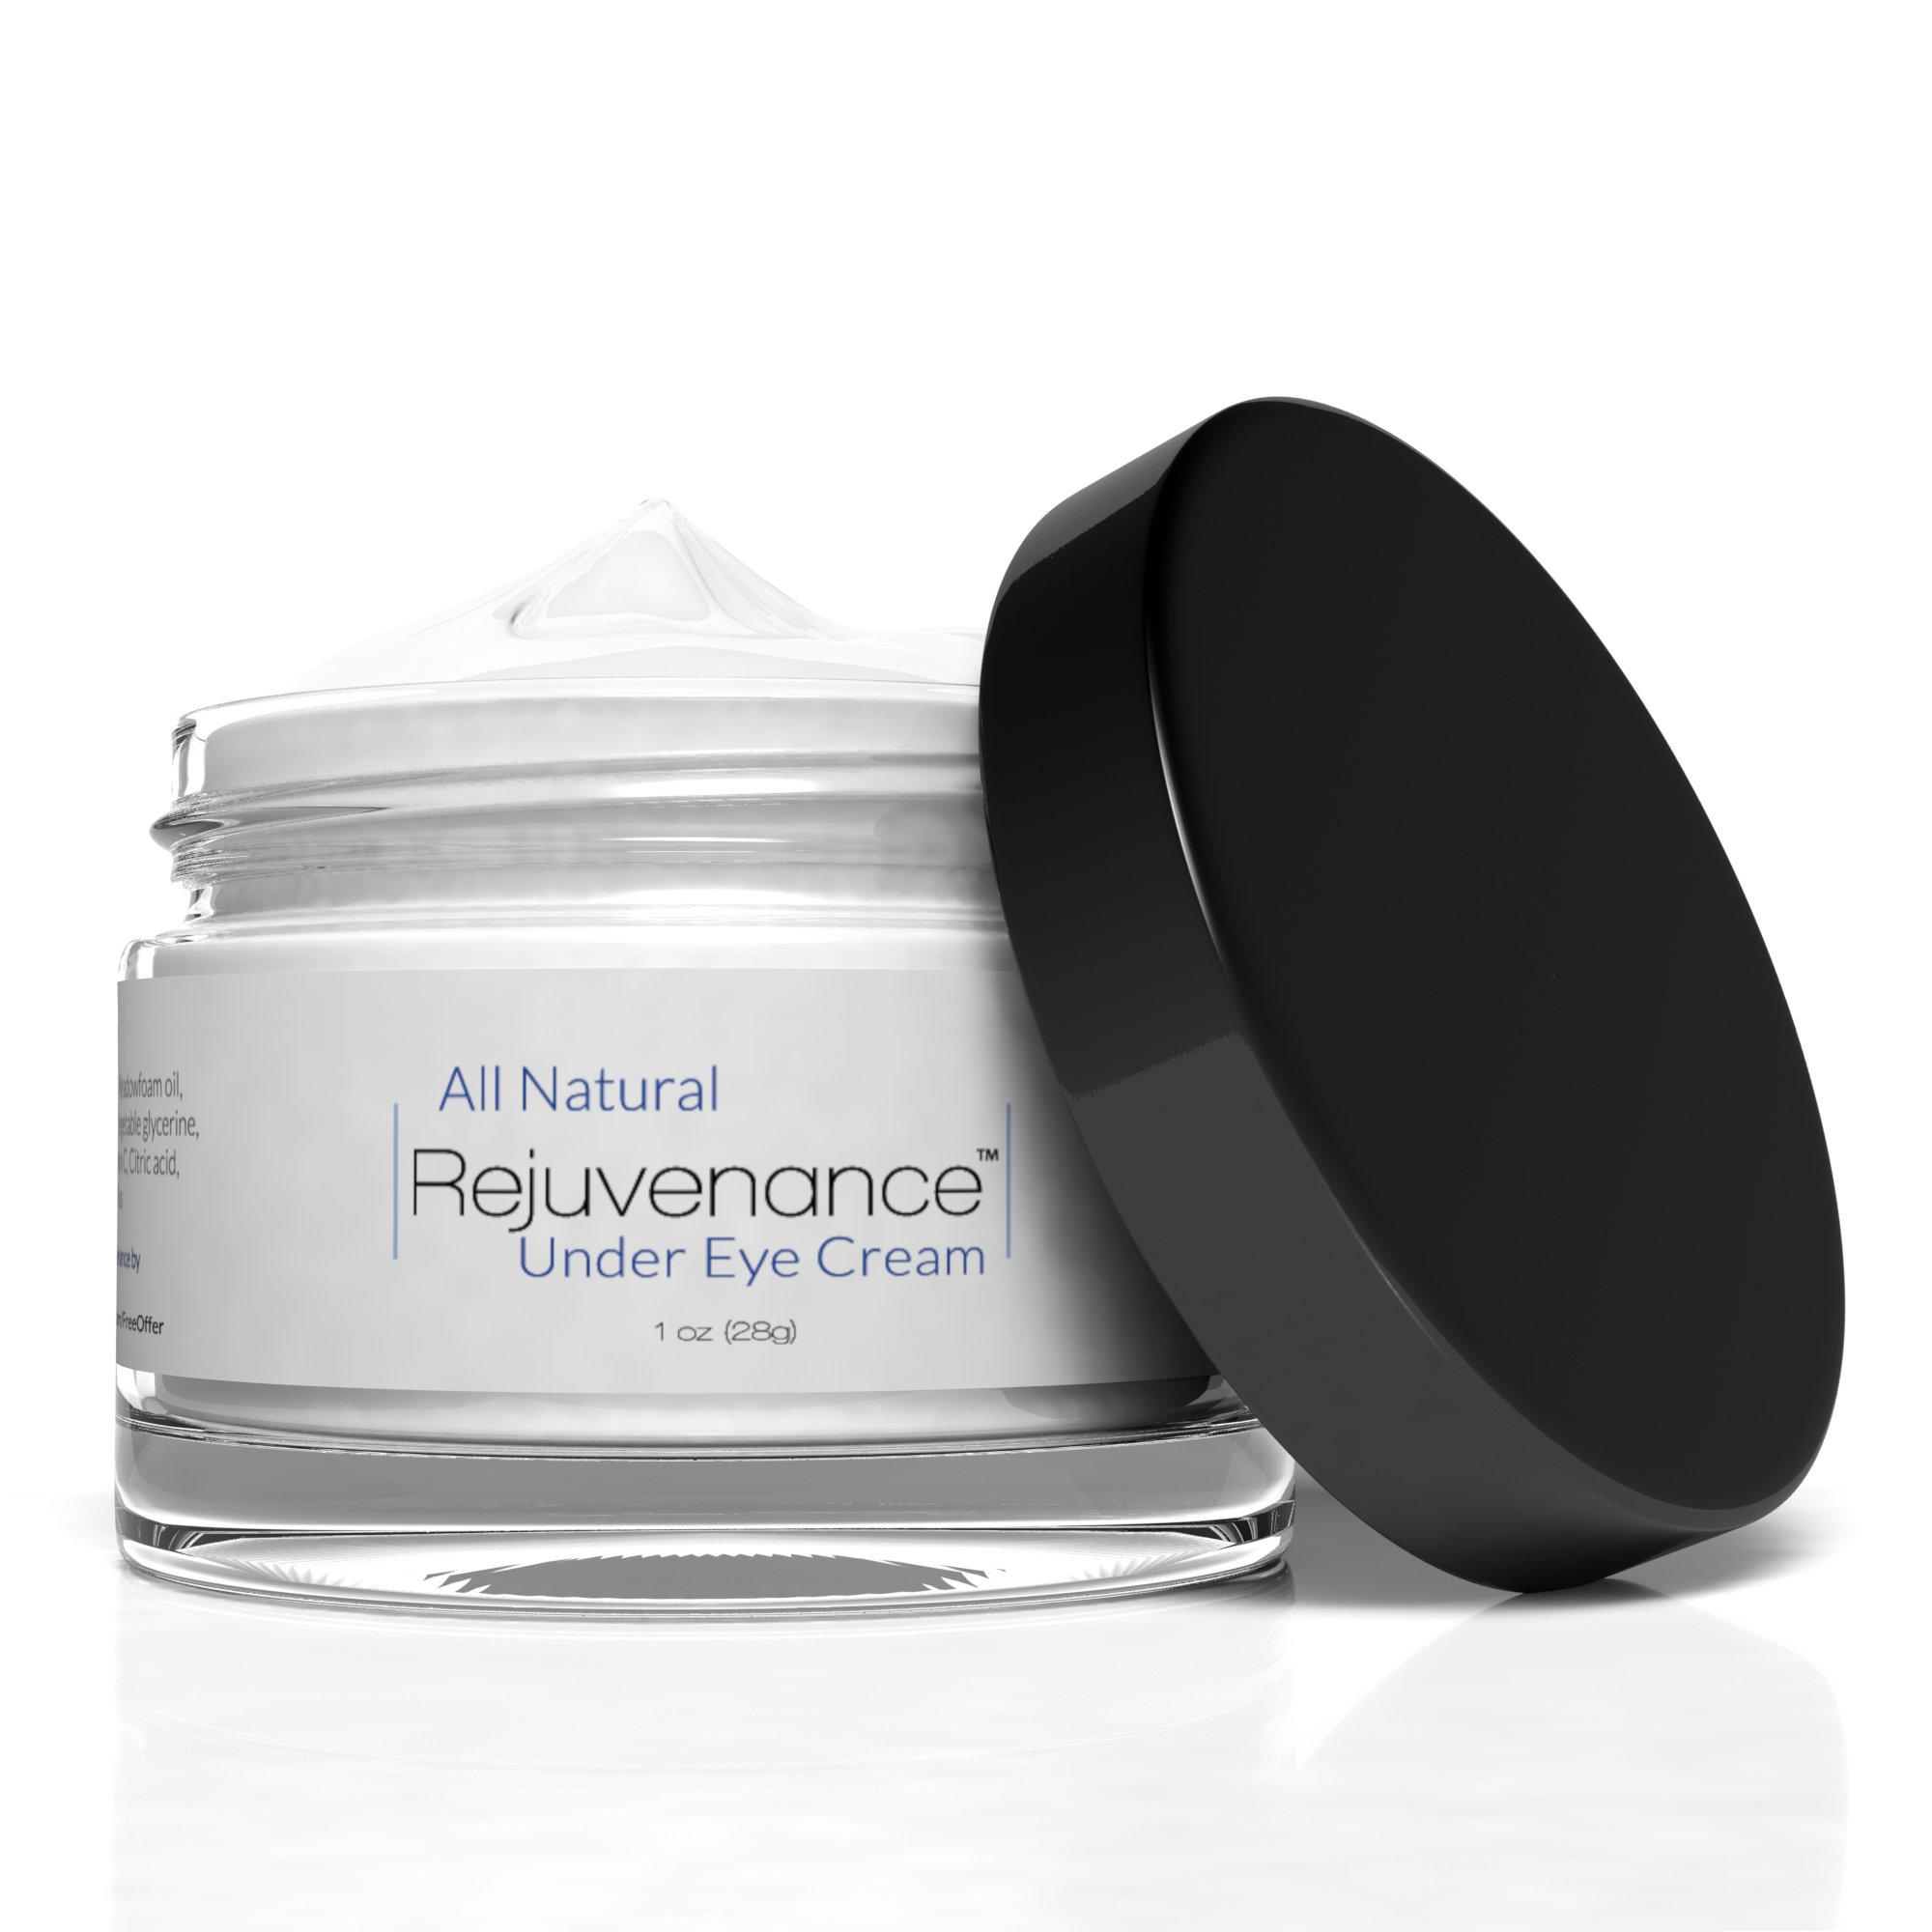 Rejuvenance - All-Natural, Clinical Strength Under Eye Cream - Removes Dark Circles, Lines and Wrinkles from Underneath Eyes Naturally - 1oz